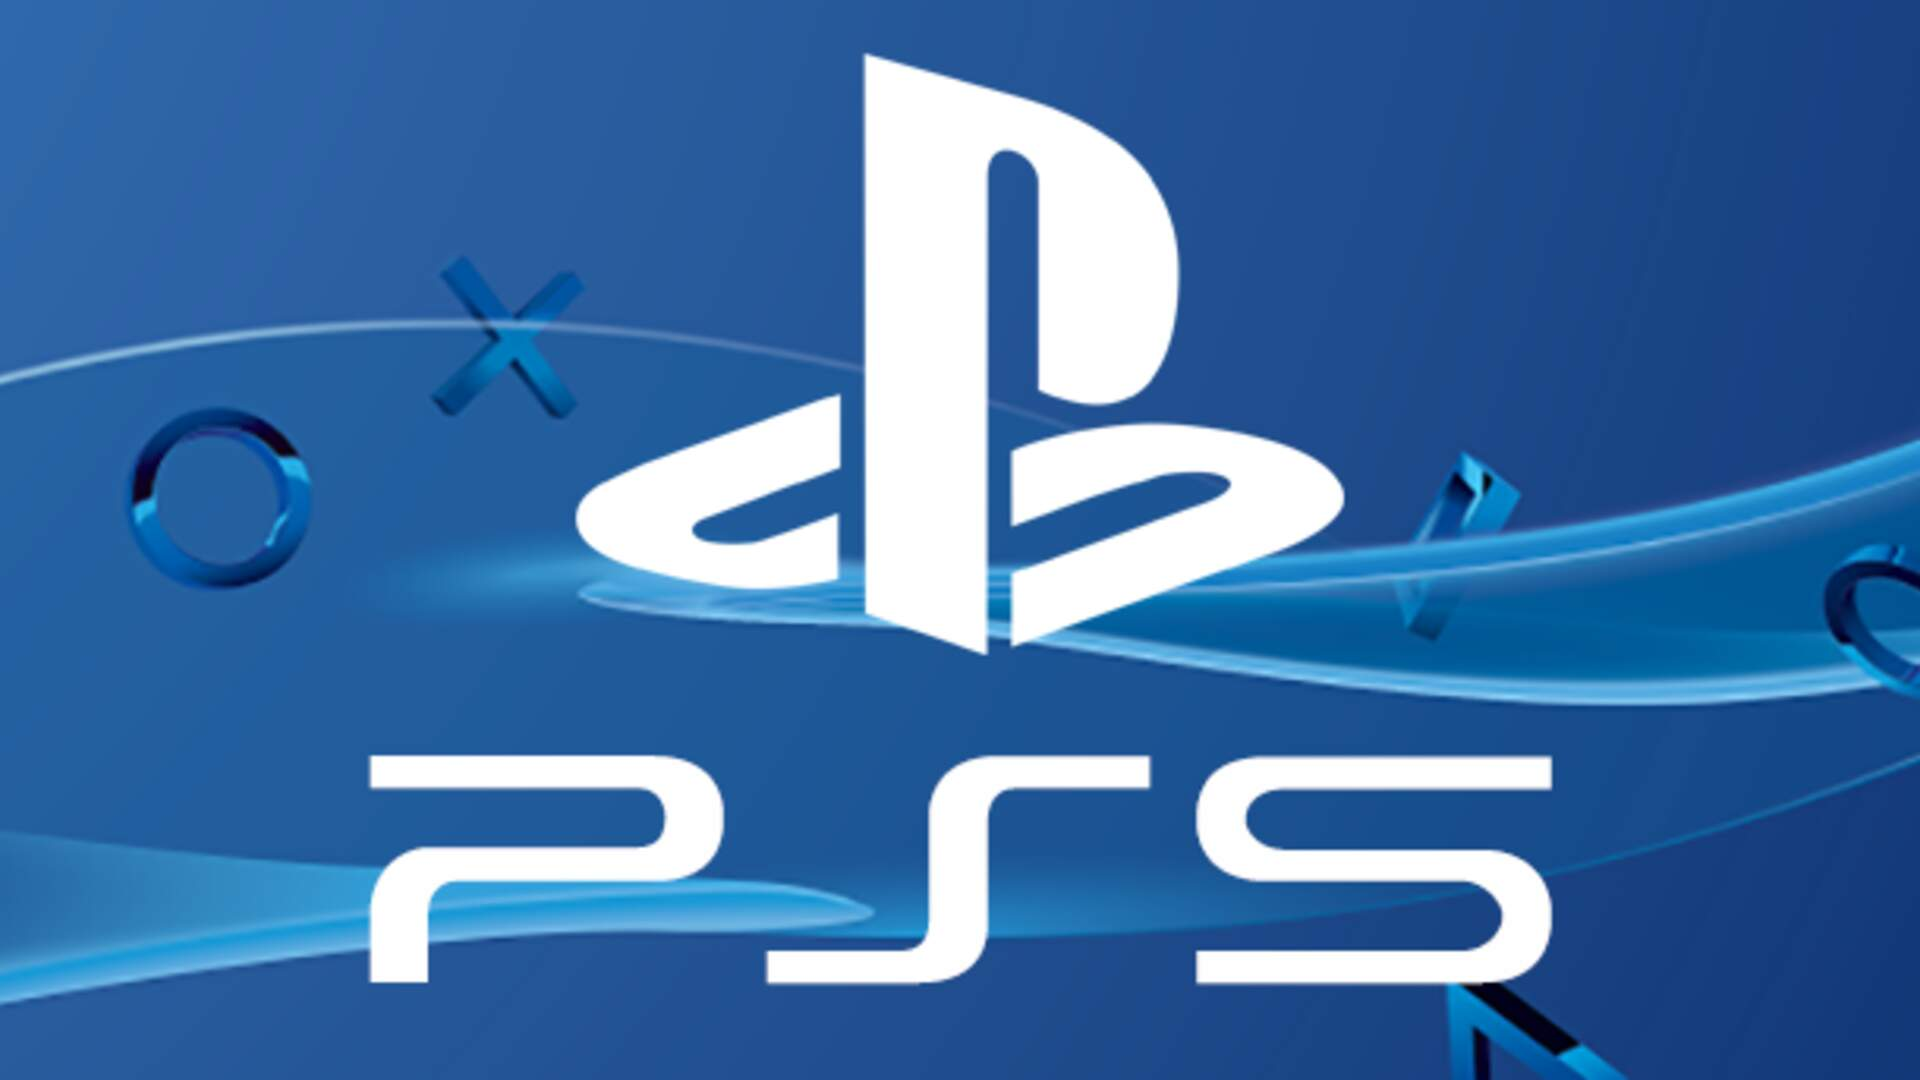 Sony Reveals First Info on the PS5, Including Backwards Compatibility With PS4 and Ray Tracing